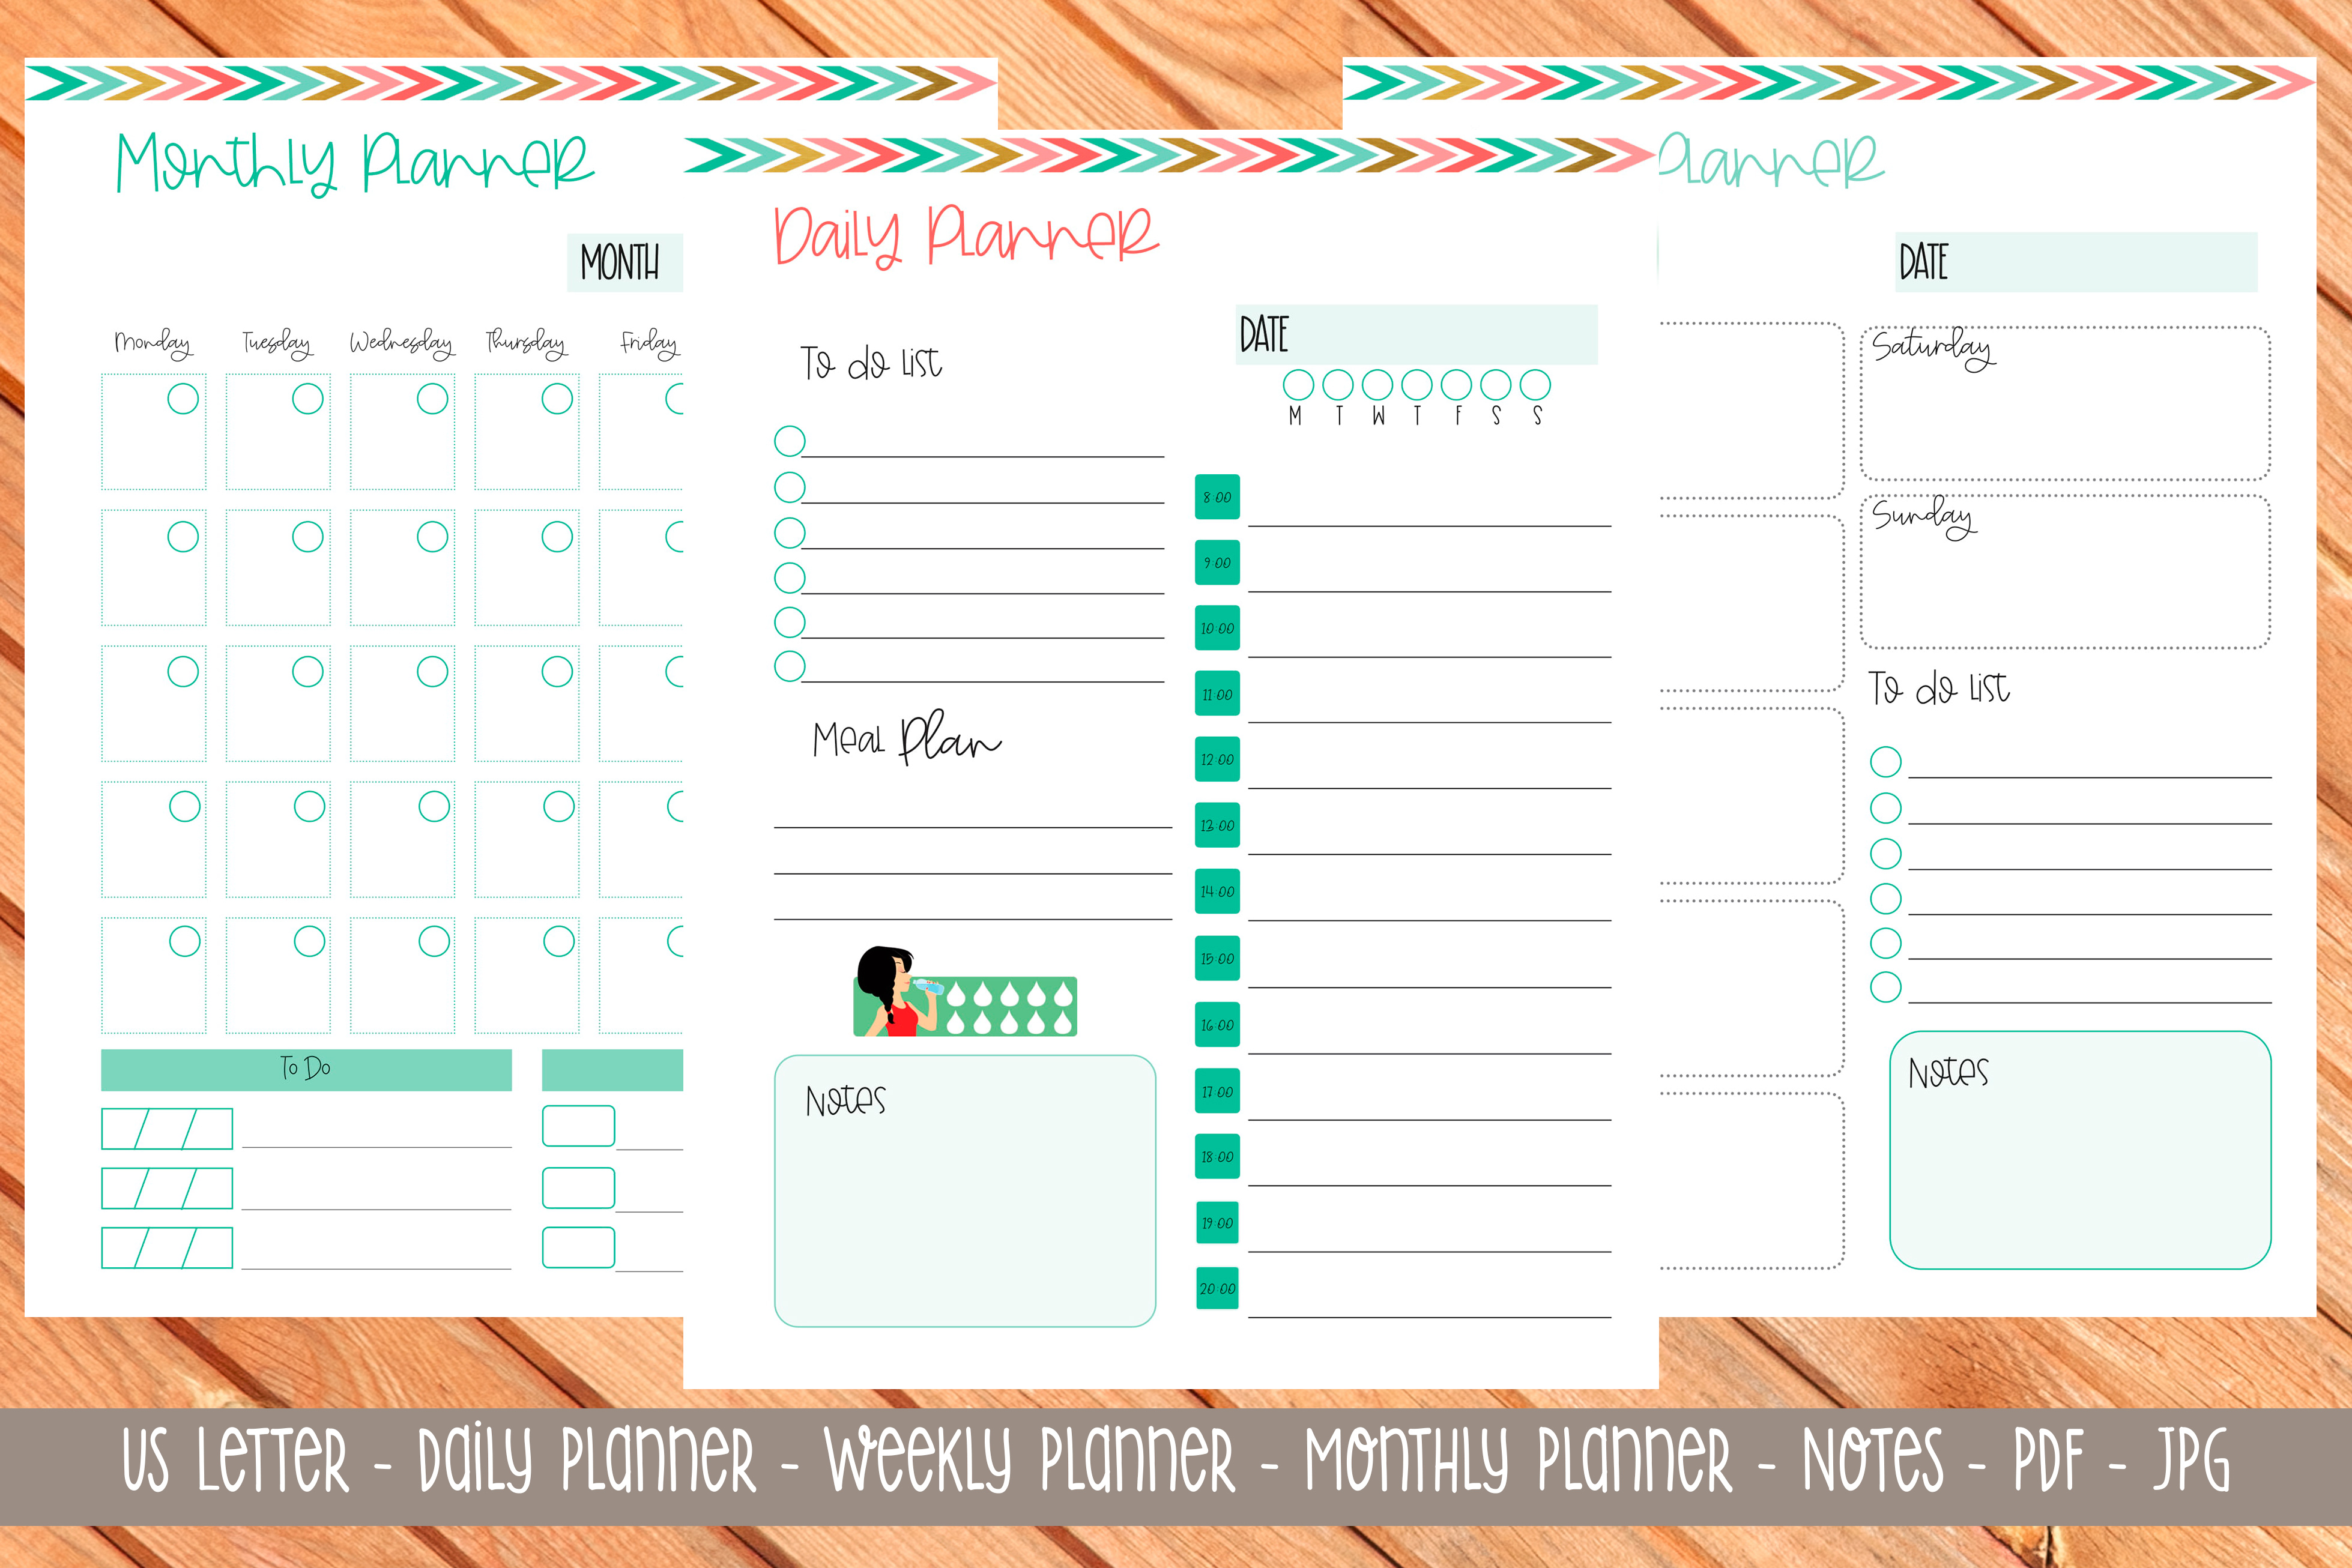 Download Free Us Letter Printable Planner 8 Graphic By Printable Planners for Cricut Explore, Silhouette and other cutting machines.